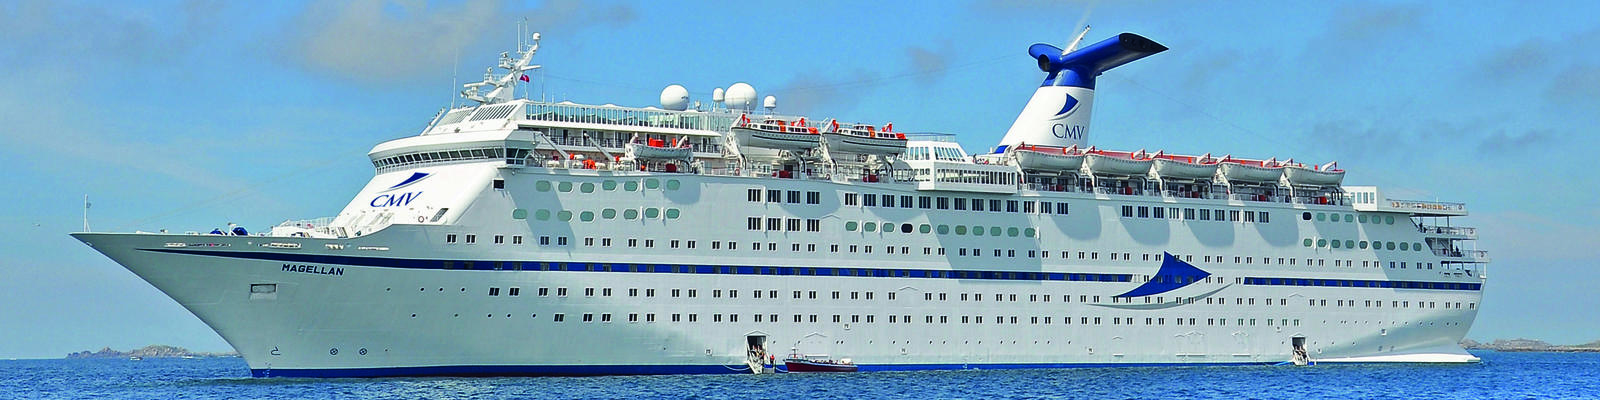 Cruise Maritime Voyages Magellan Cruise Ship Review Photos - Marco polo cruise ship dress code